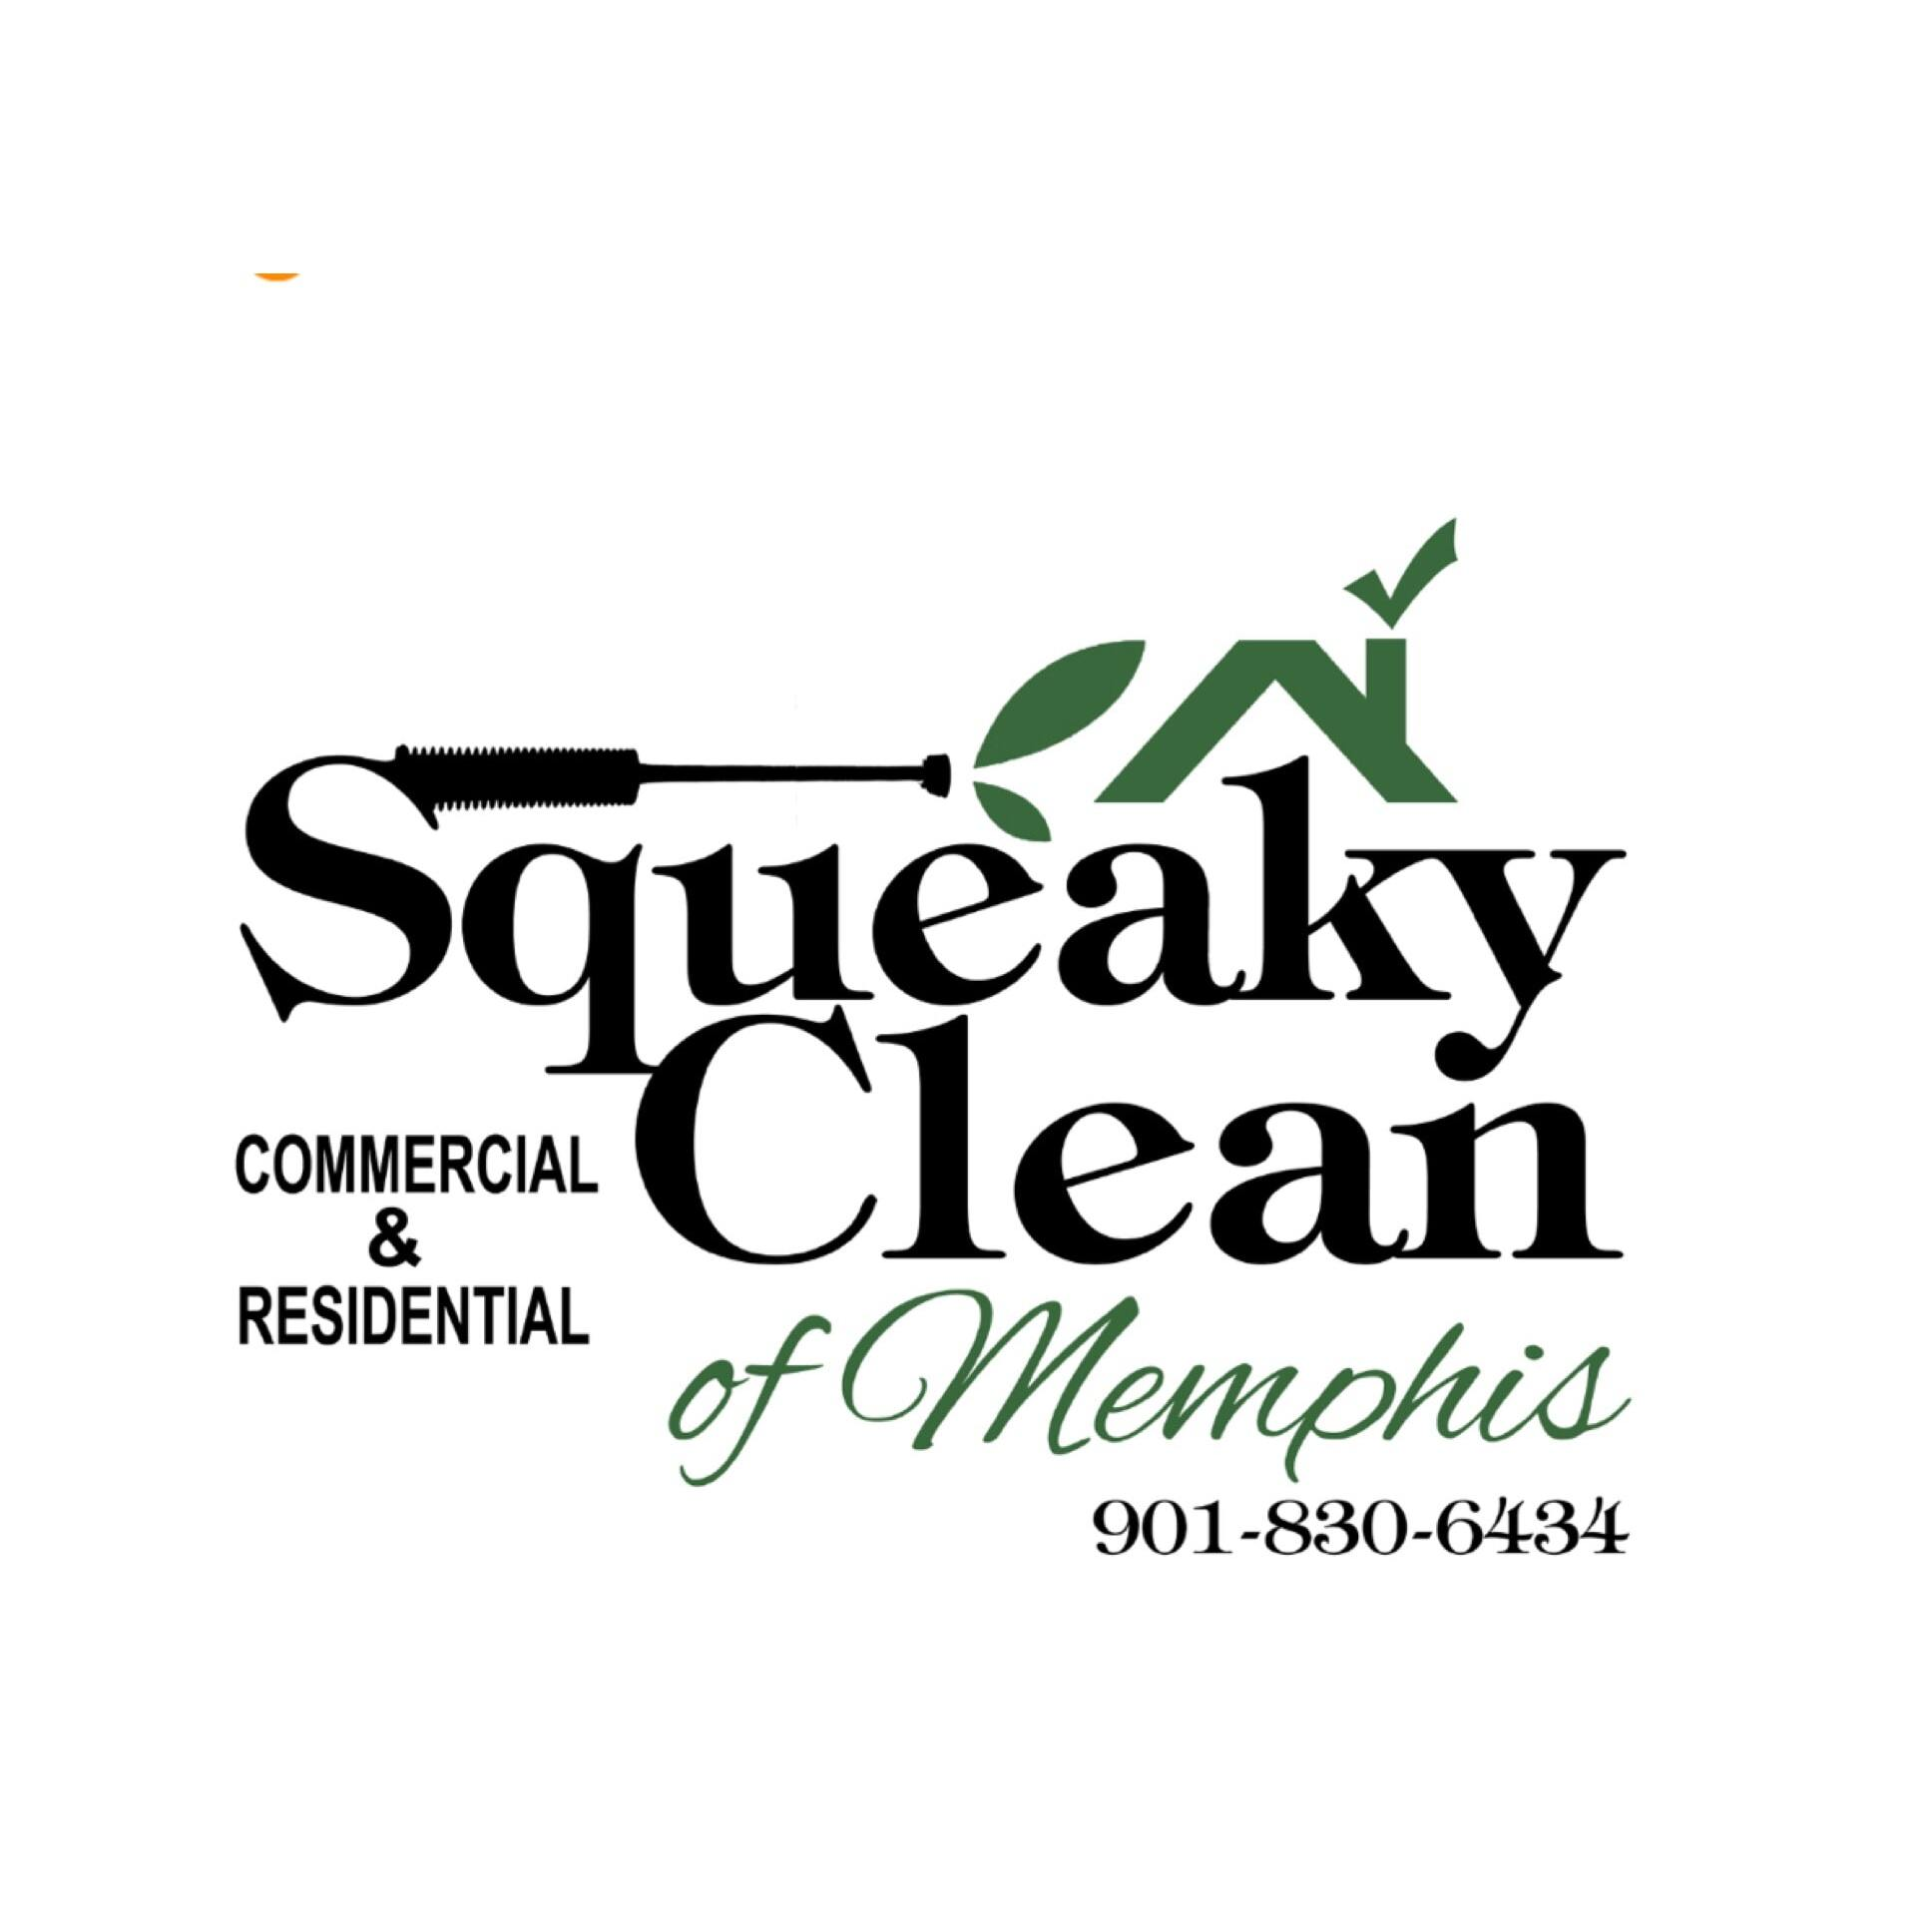 Squeaky Clean of Memphis - Memphis, TN - House Cleaning Services